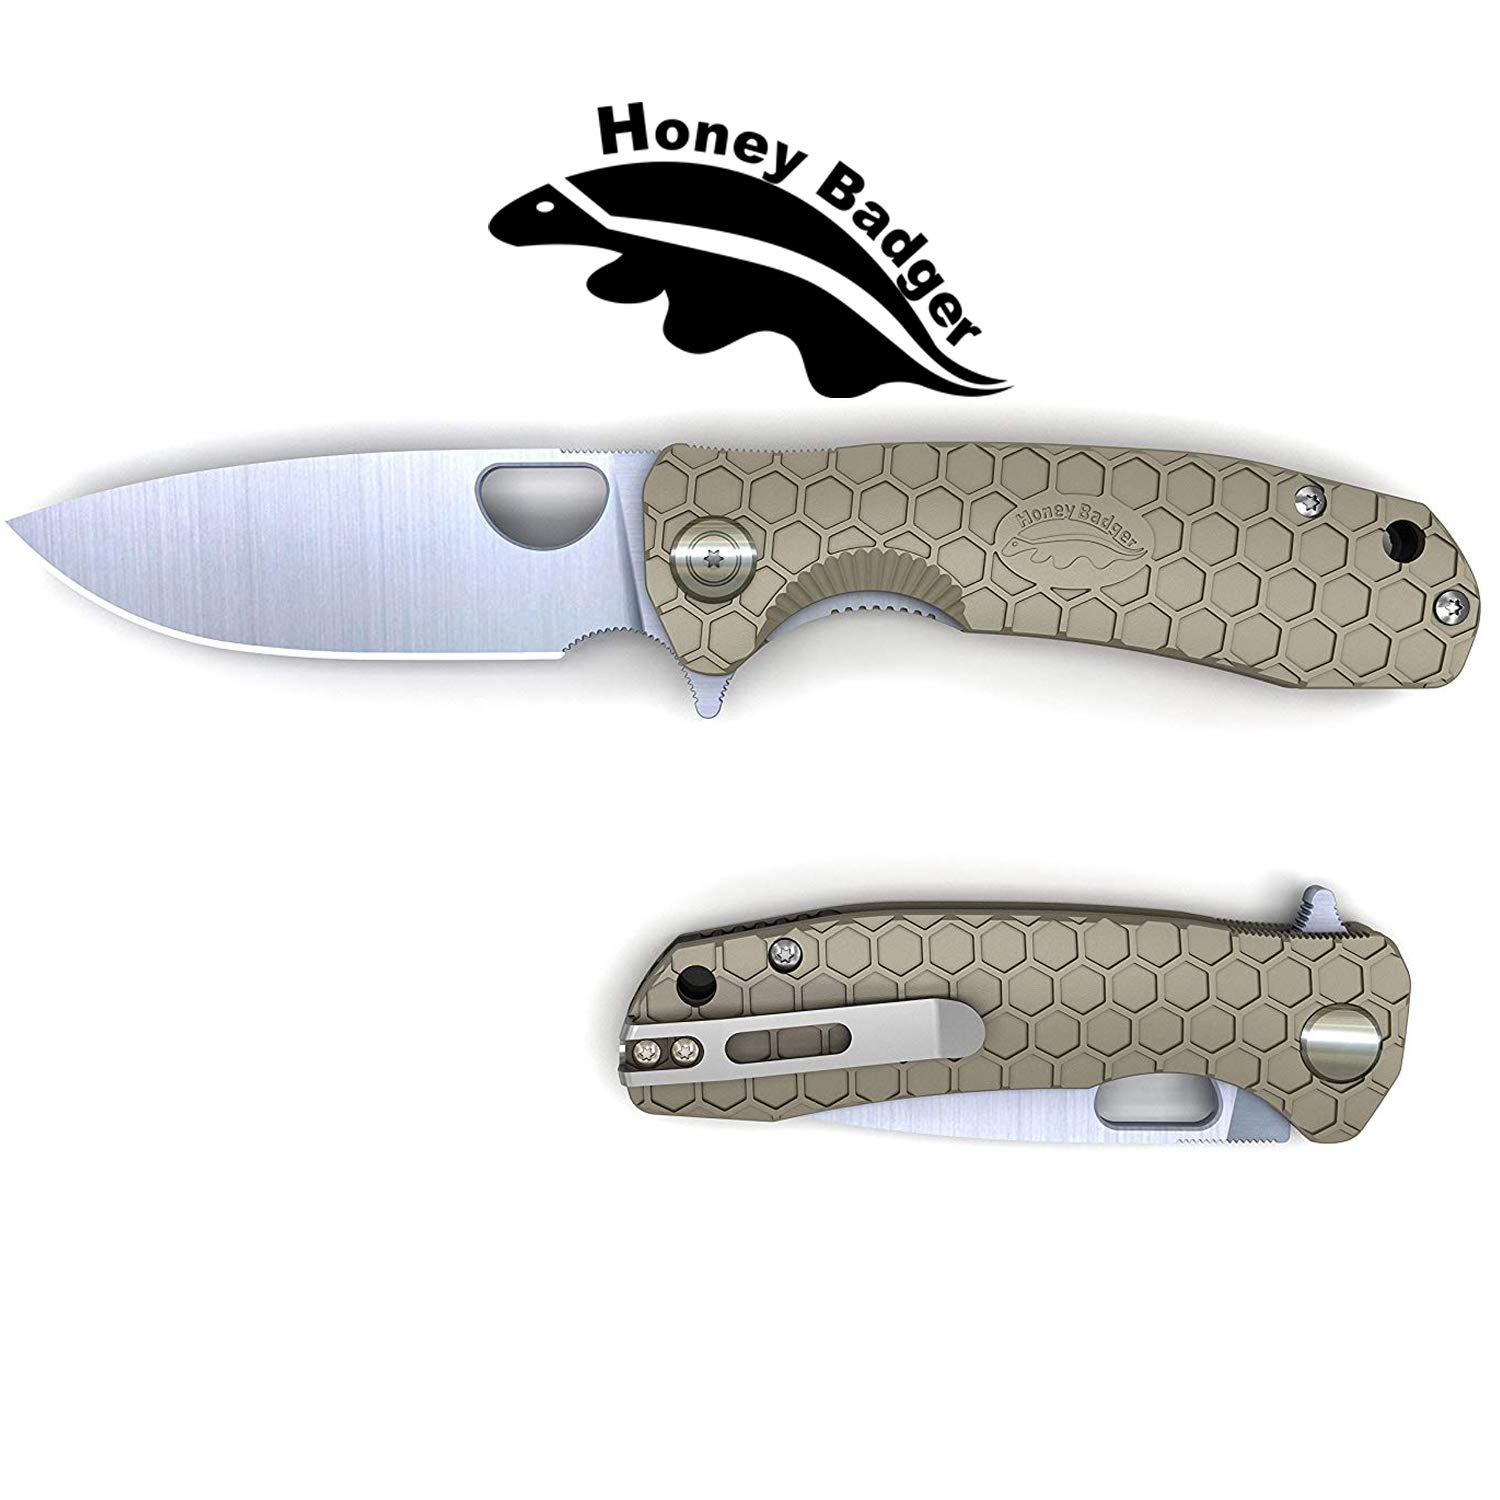 Honey Badger Pocket Knife EDC Flipper Liner Lock Folding Tactical Hunting Fishing Knife 8cr13MOV Steel Deep Pocket Carry Gift Box with Torx Wrench (Tan, Small 2.57oz - 3.7'' Closed - 2.81'' Blade) by Western Active